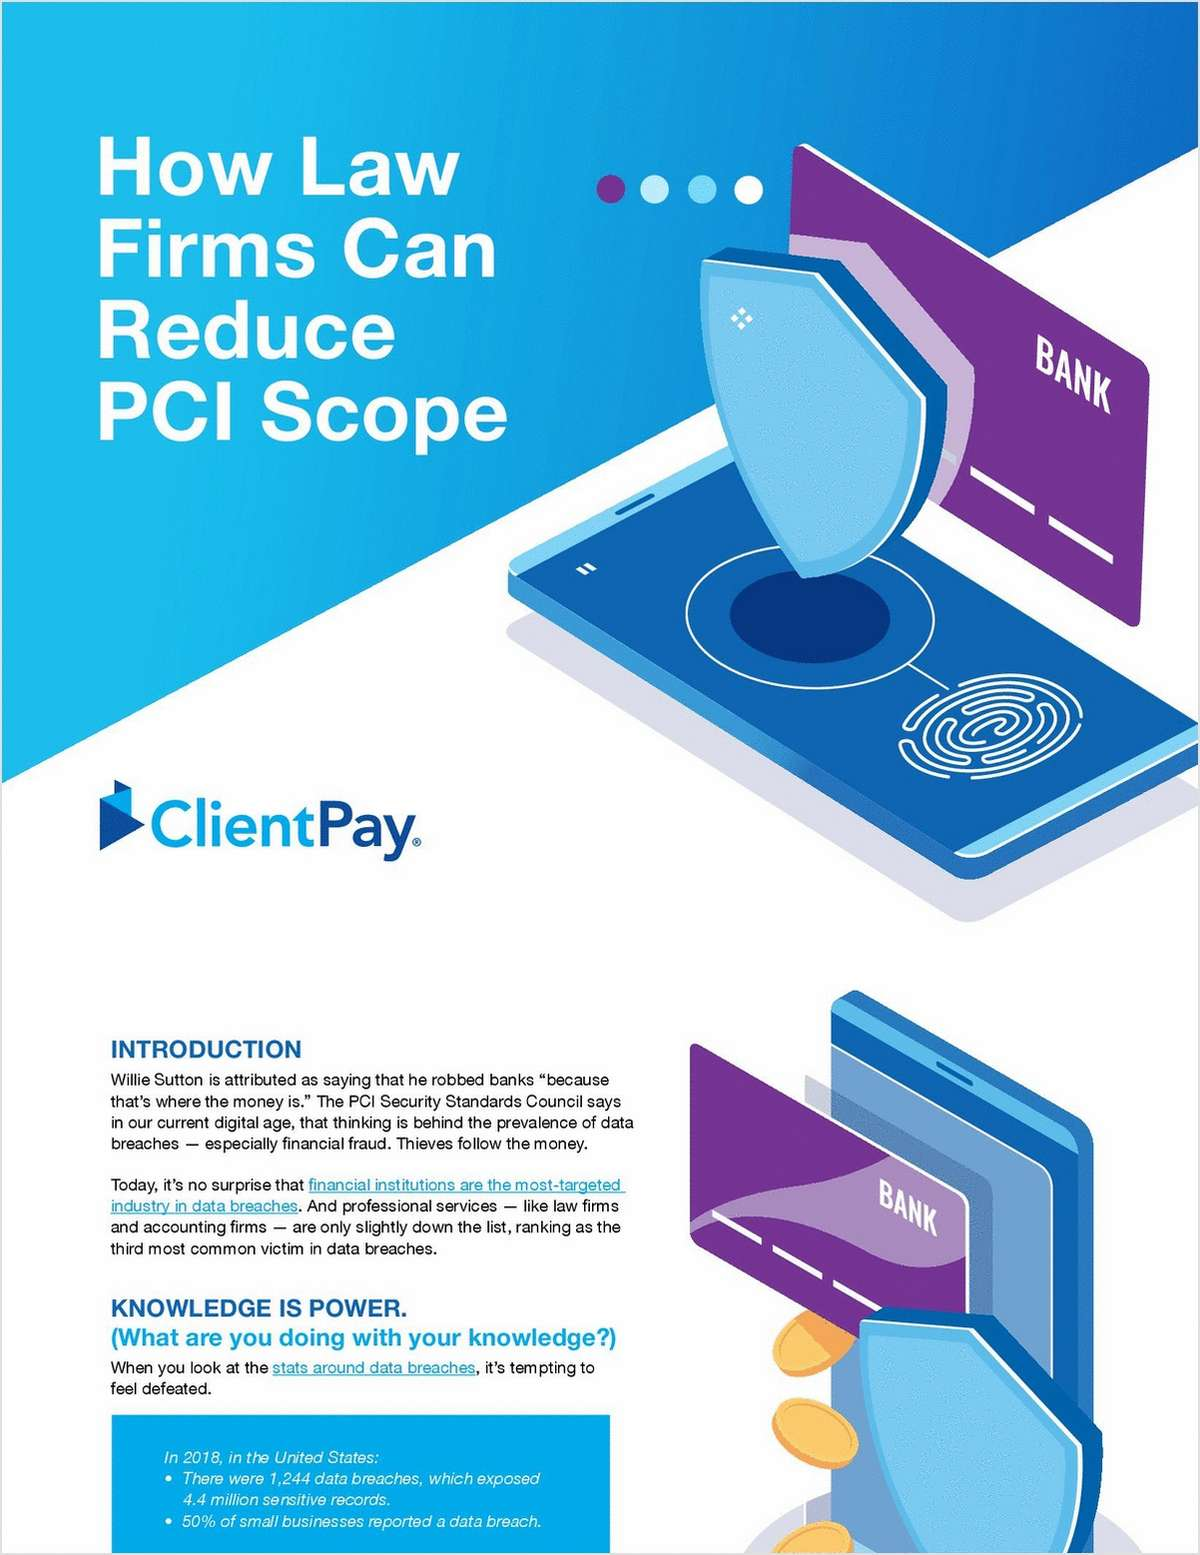 How Law Firms Can Reduce PCI Scope